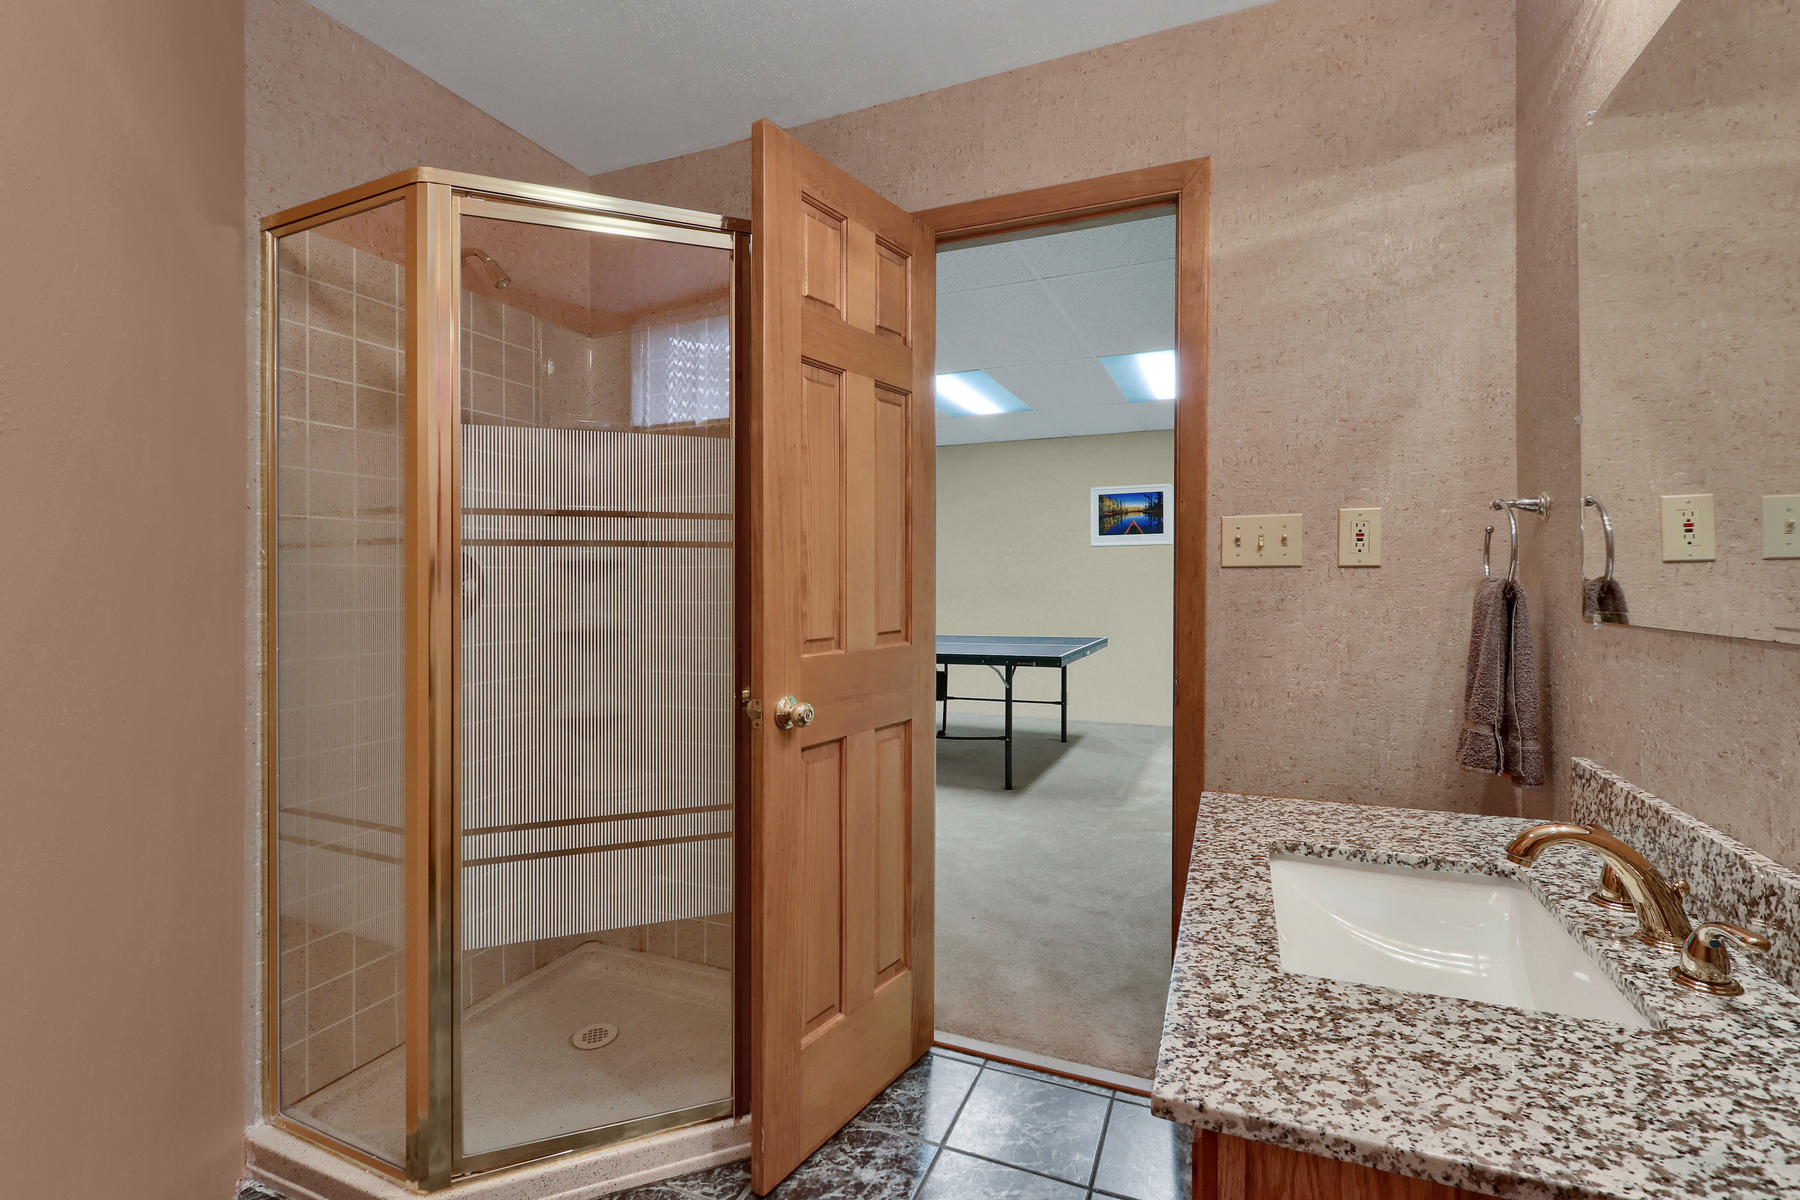 8490 Independence Way Arvada-018-029-Bathroom-MLS_Size.jpg